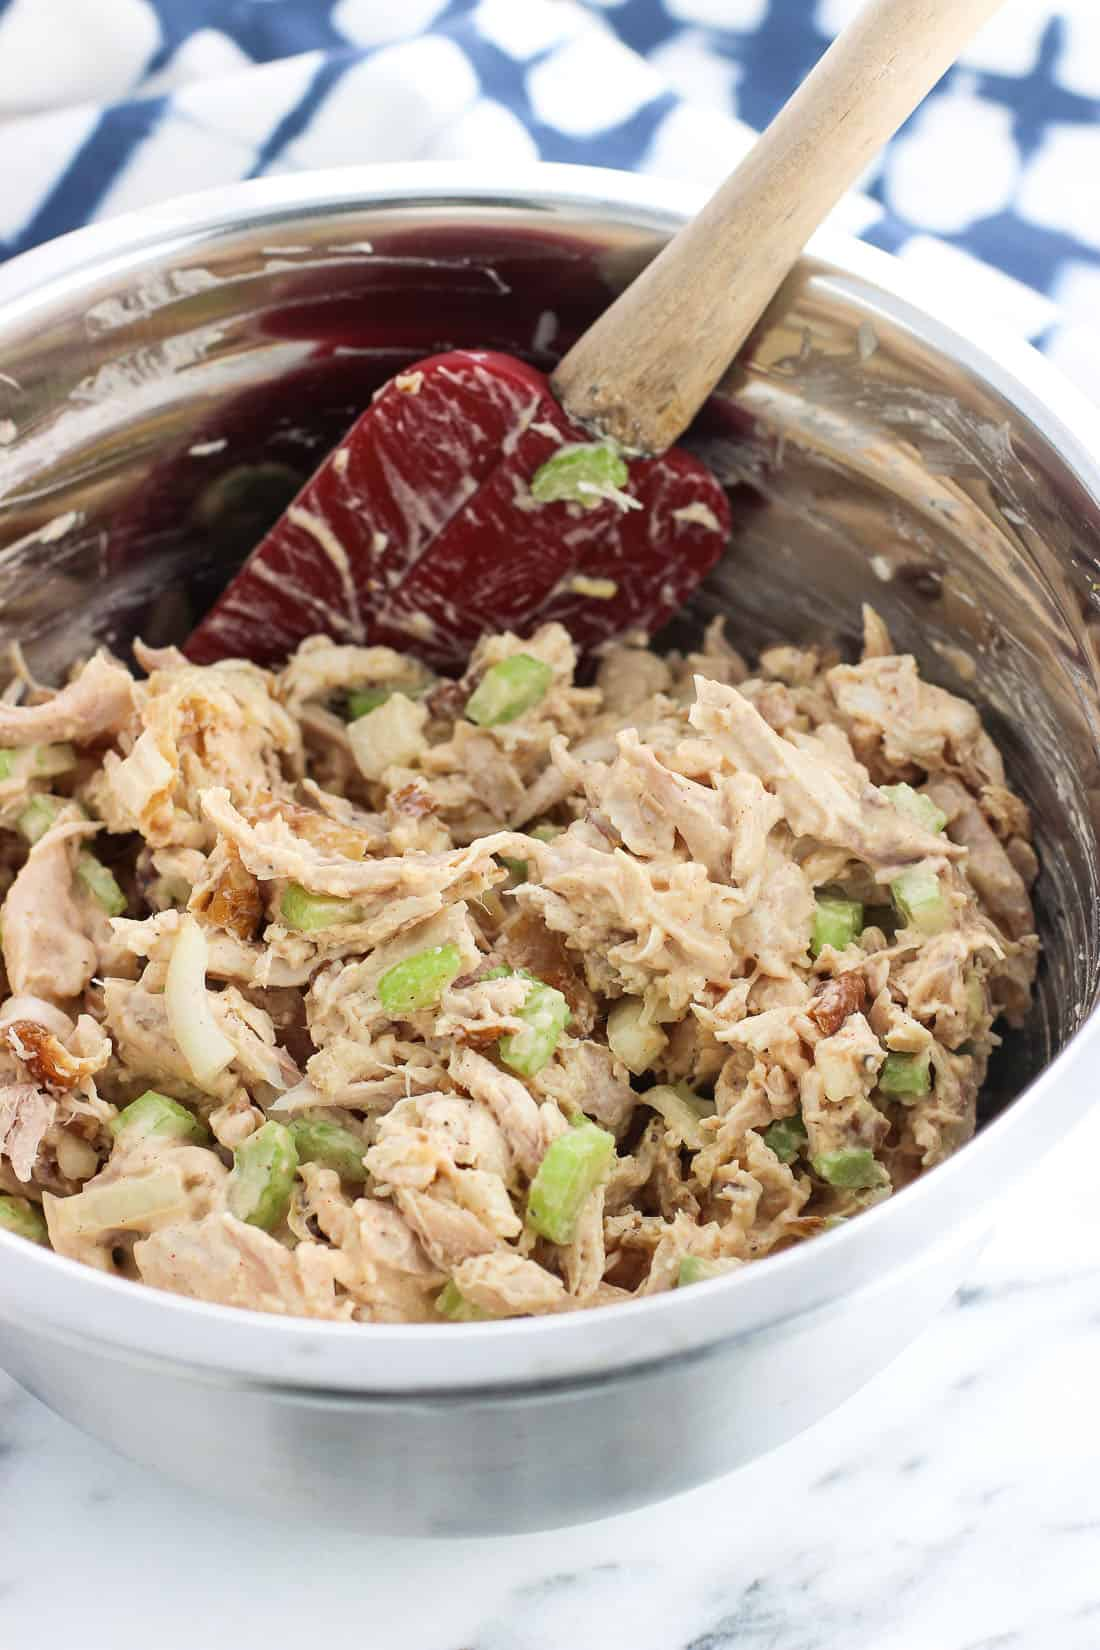 Chicken salad in a mixing bowl with a spatula